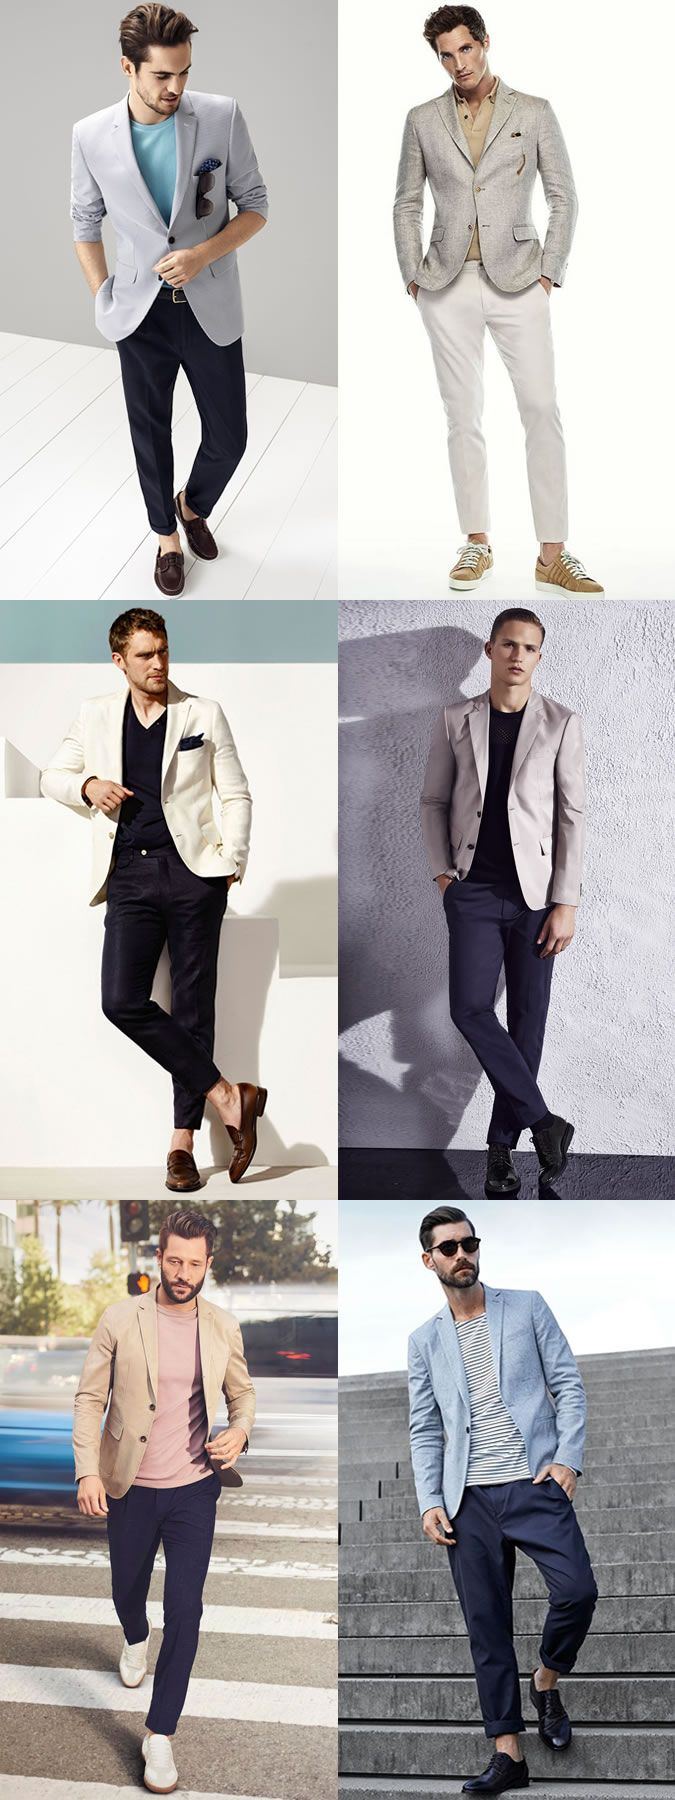 Men's Unstructured Jackets/Blazers With Chinos or Jeans Outfit Inspiration